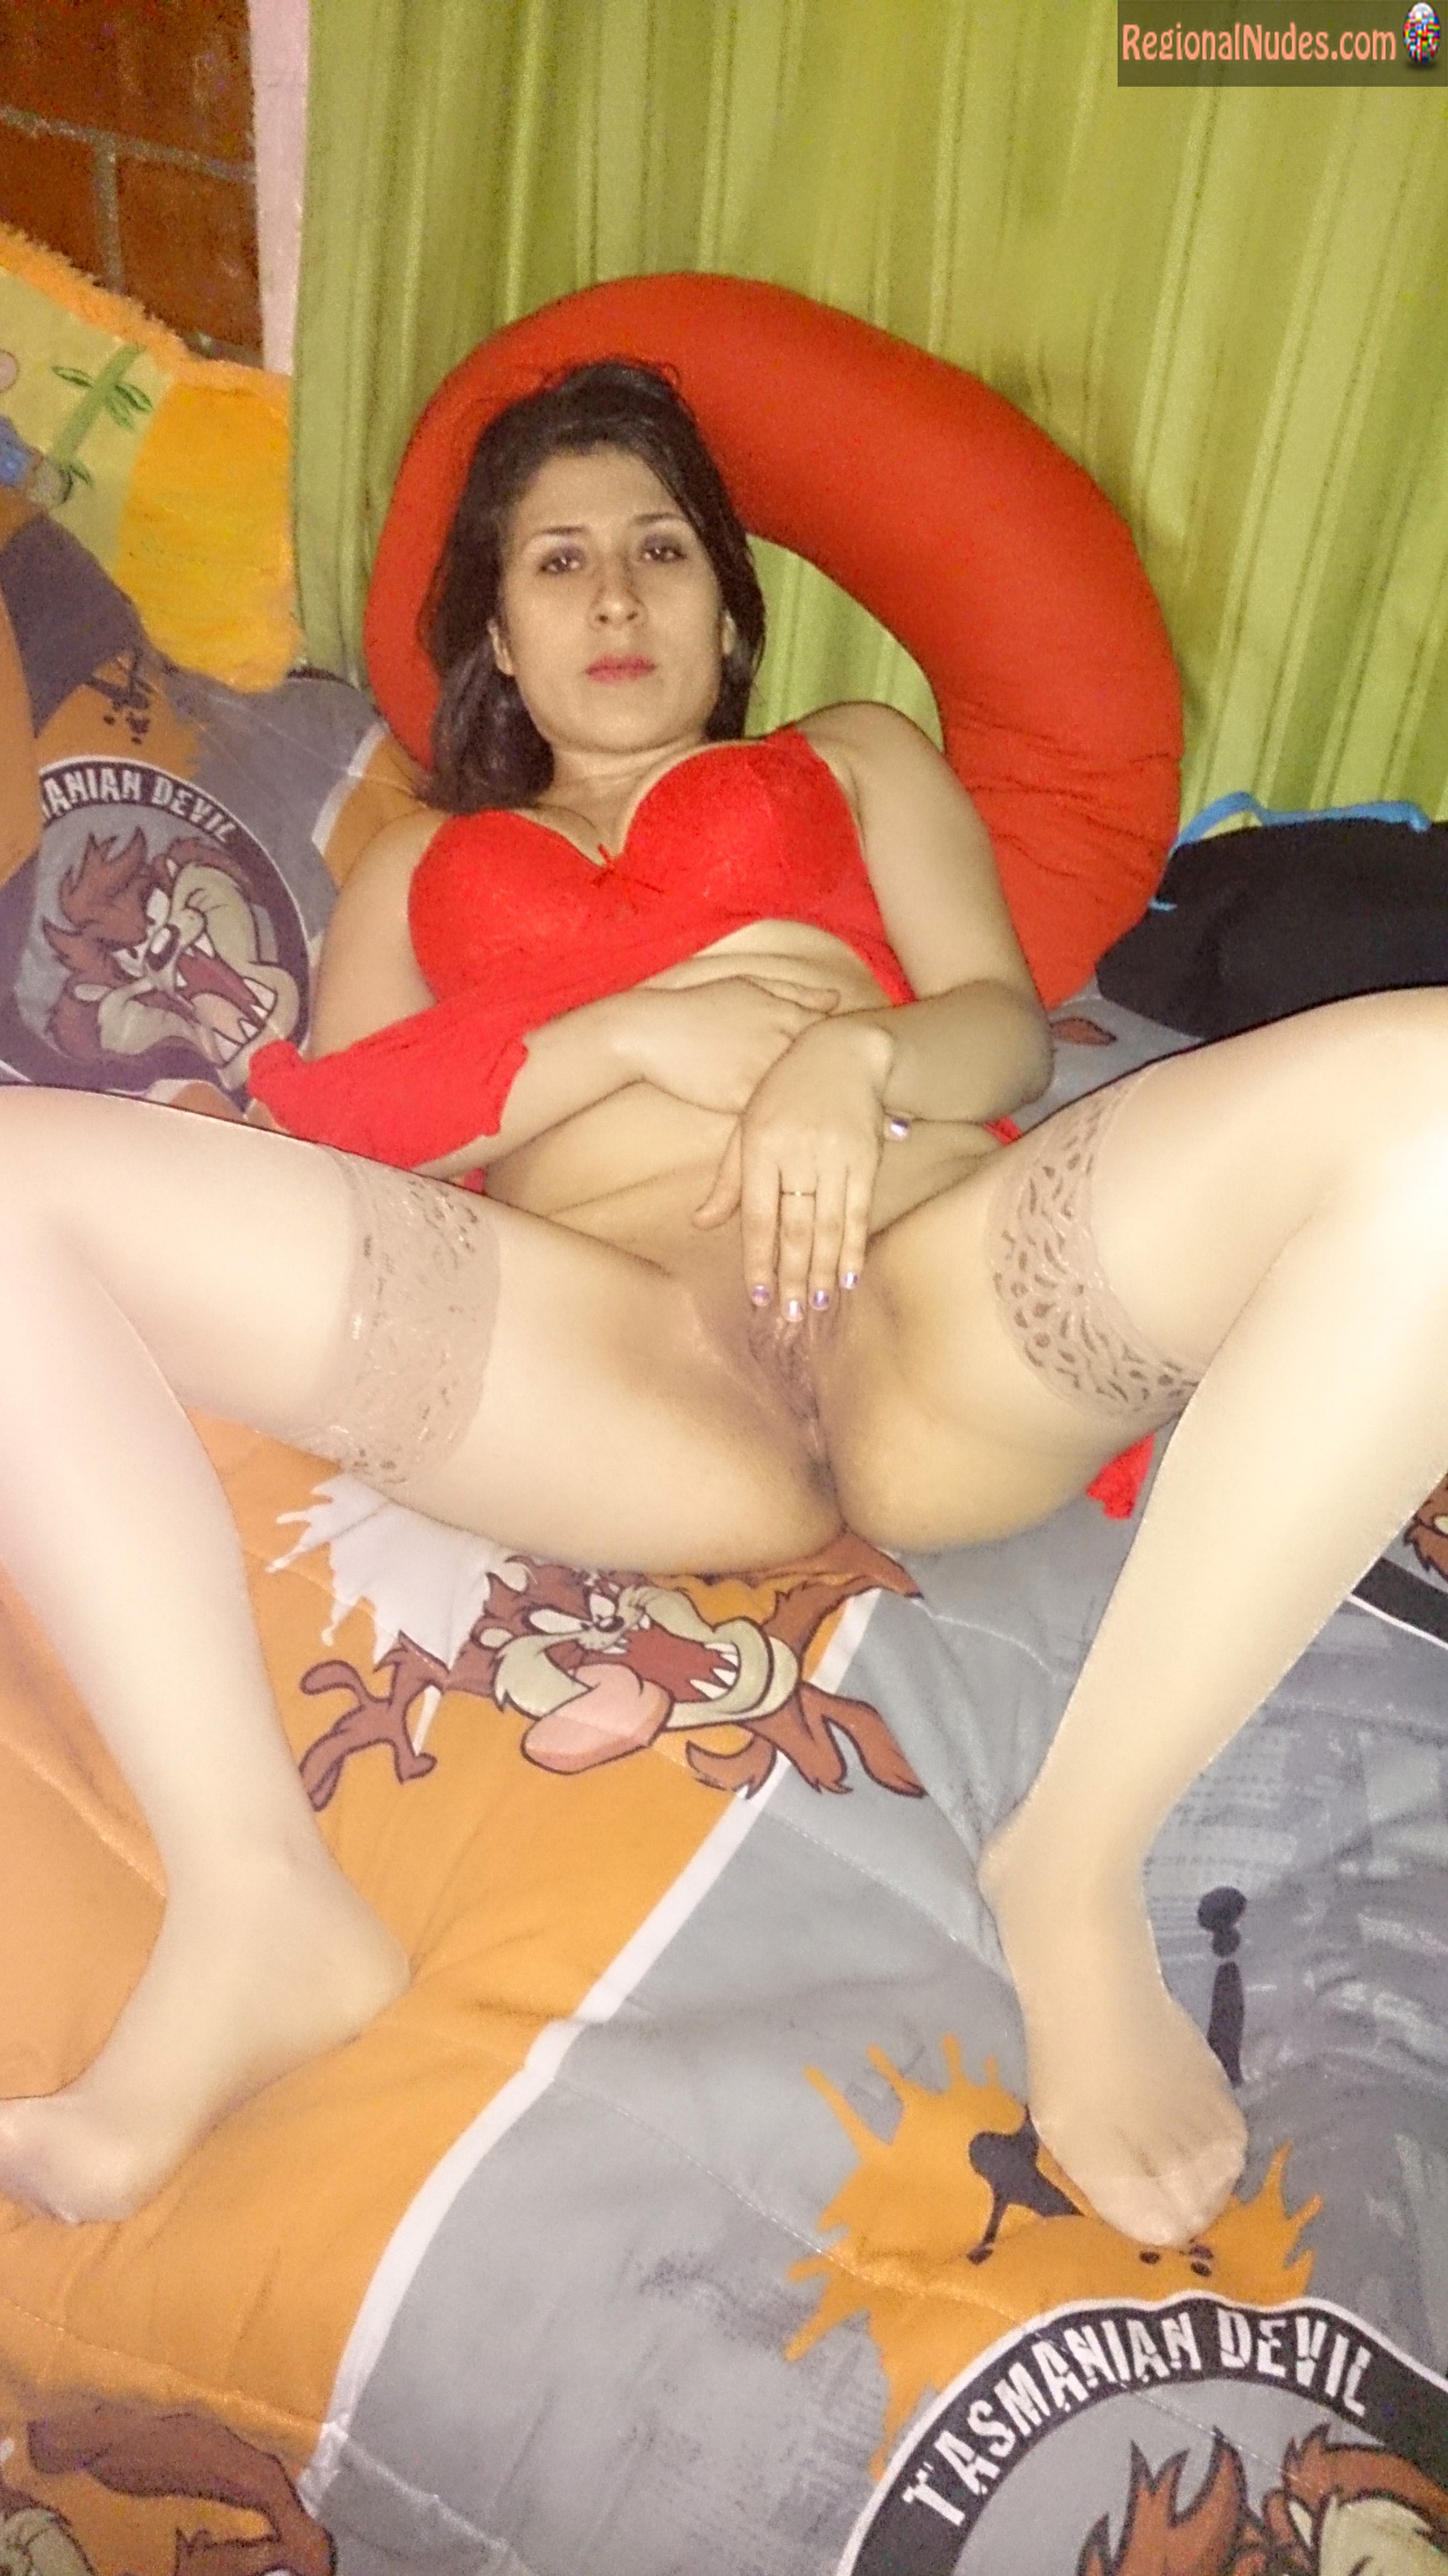 photos of chile girls naked